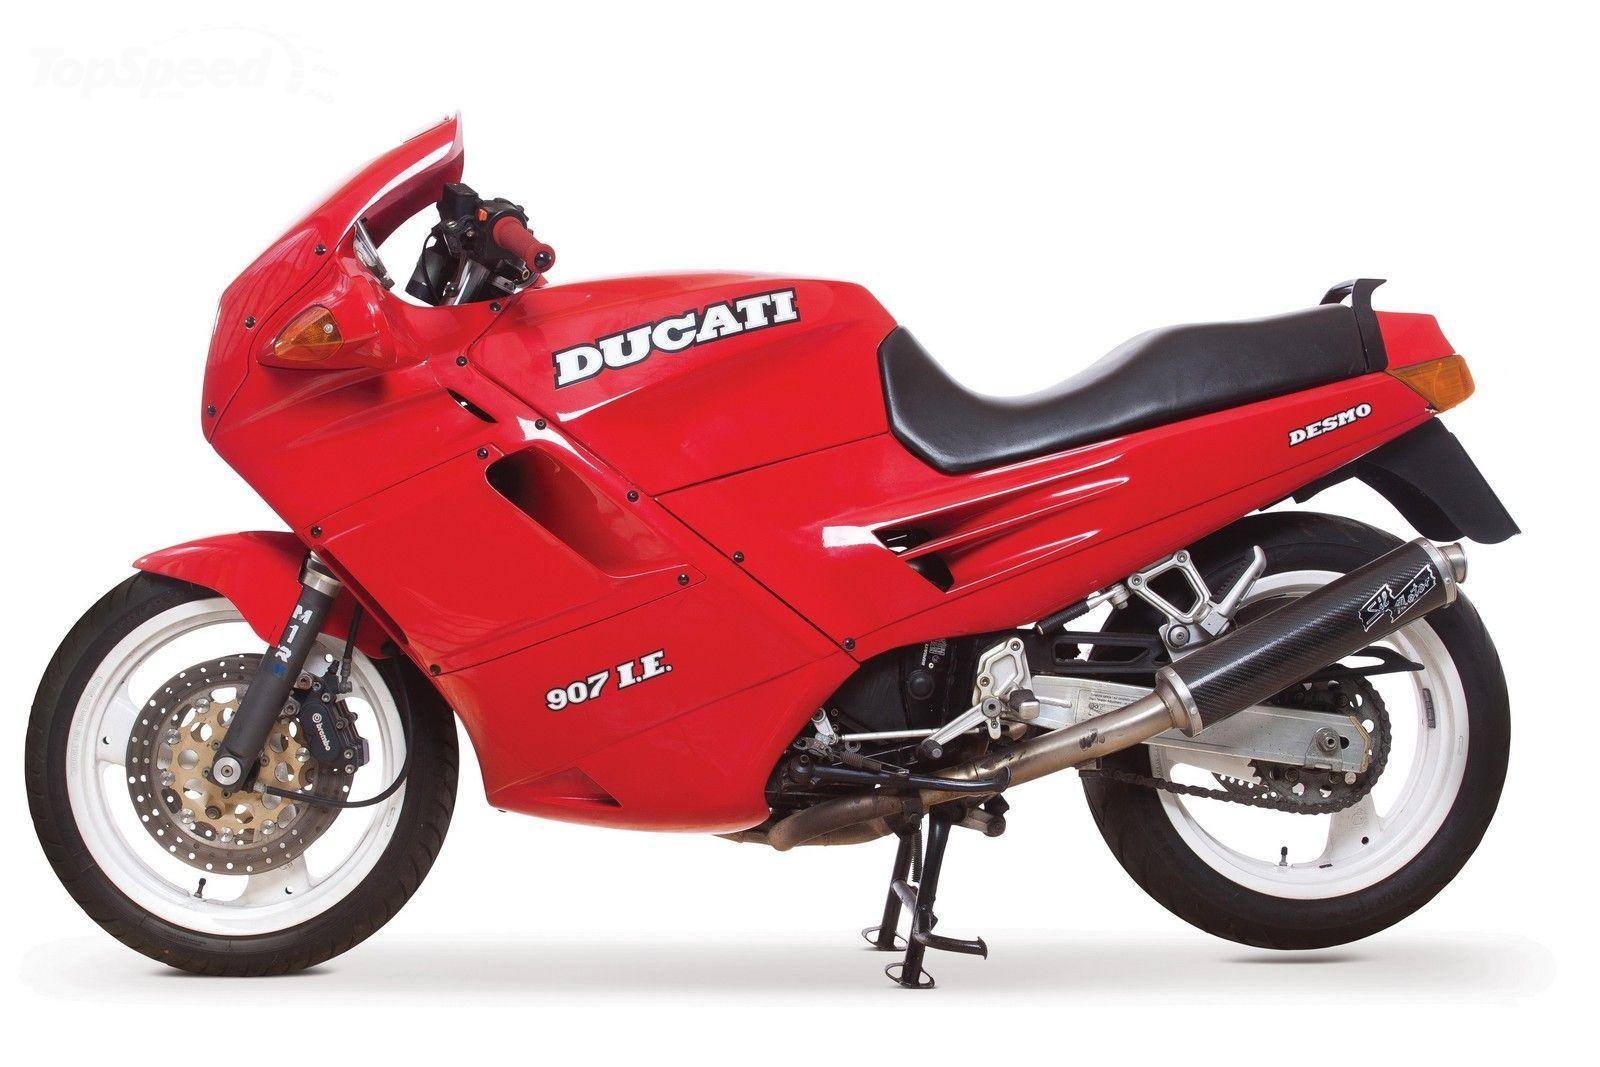 Ducati 907 i.e. 1993 wallpapers #166251